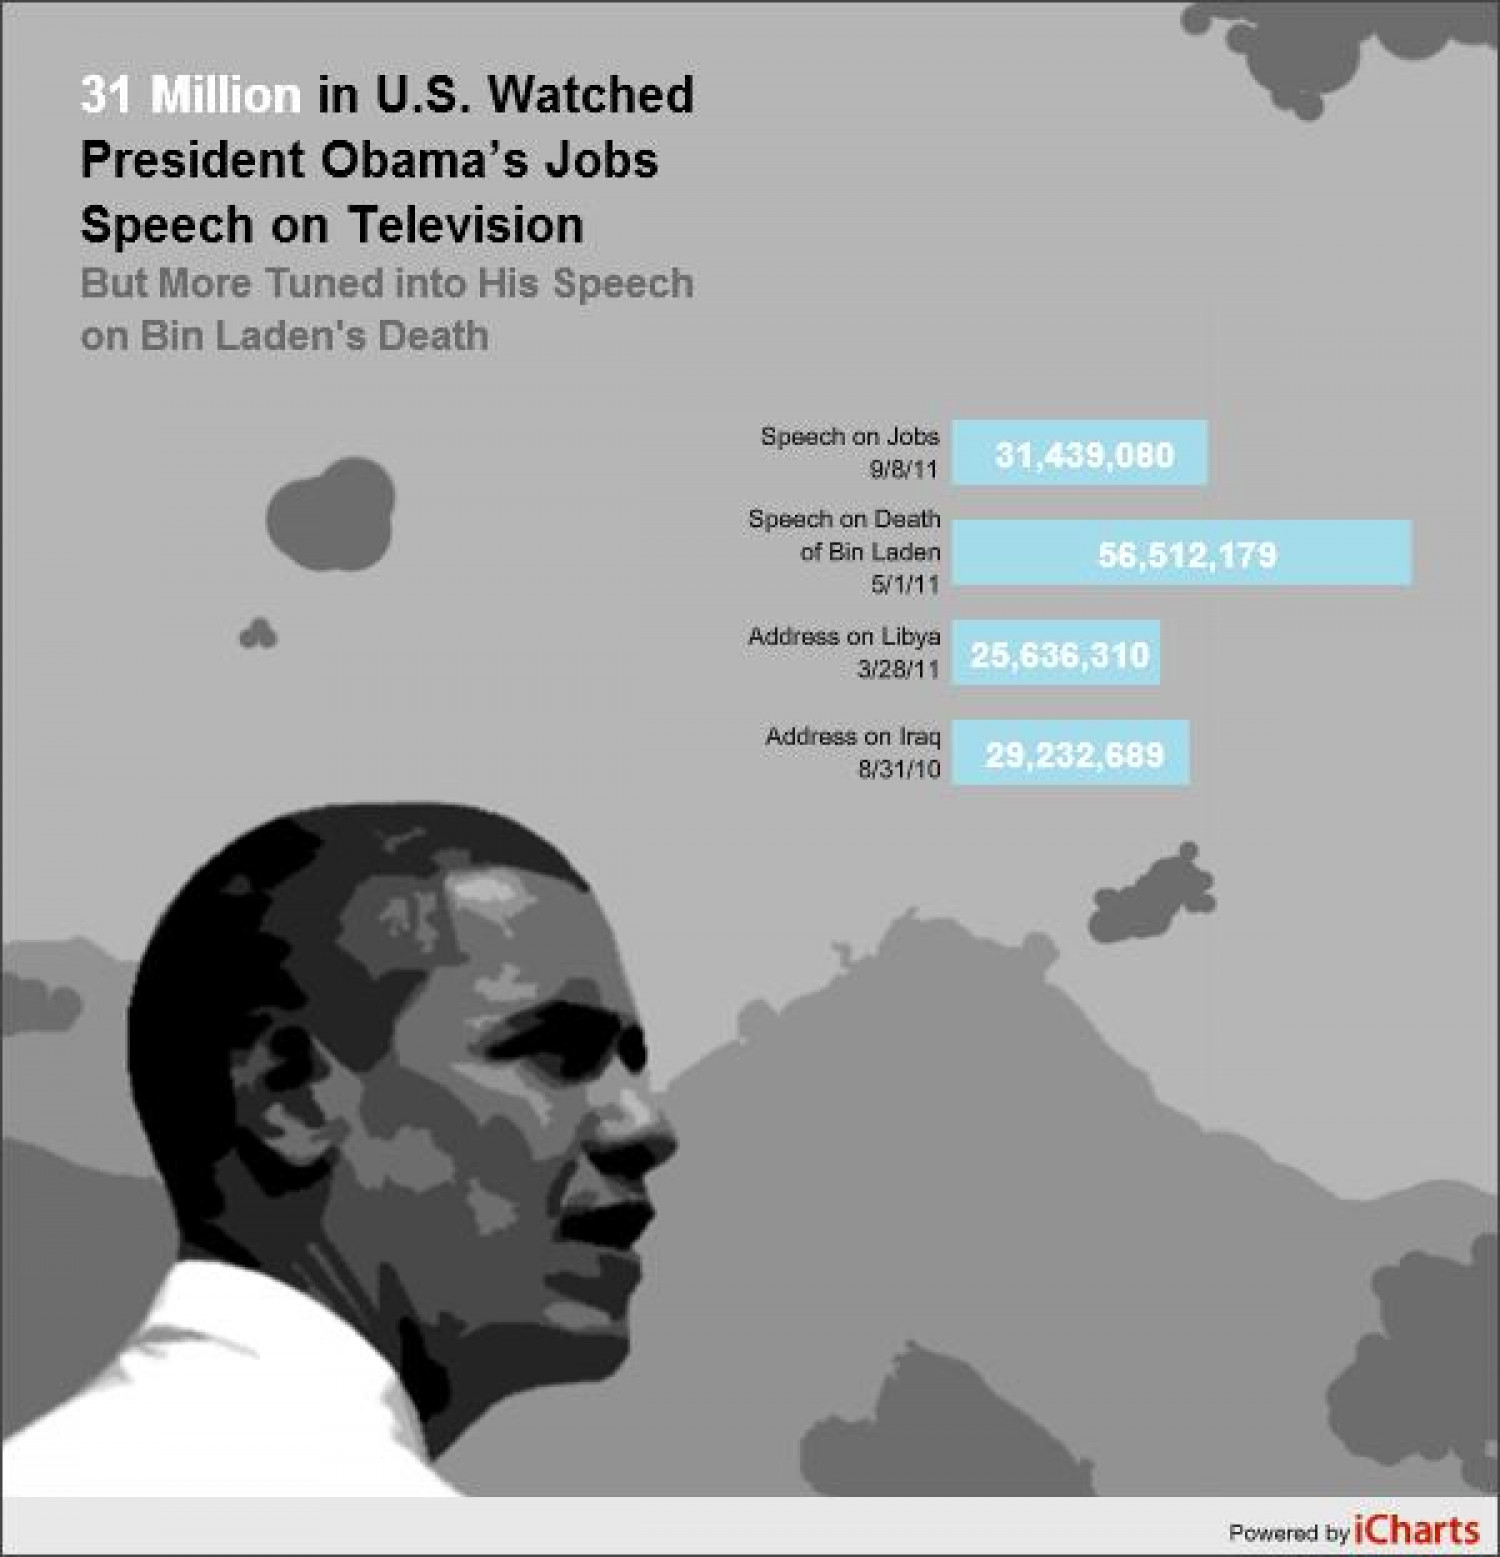 Viewership of Obama TV Speeches Infographic